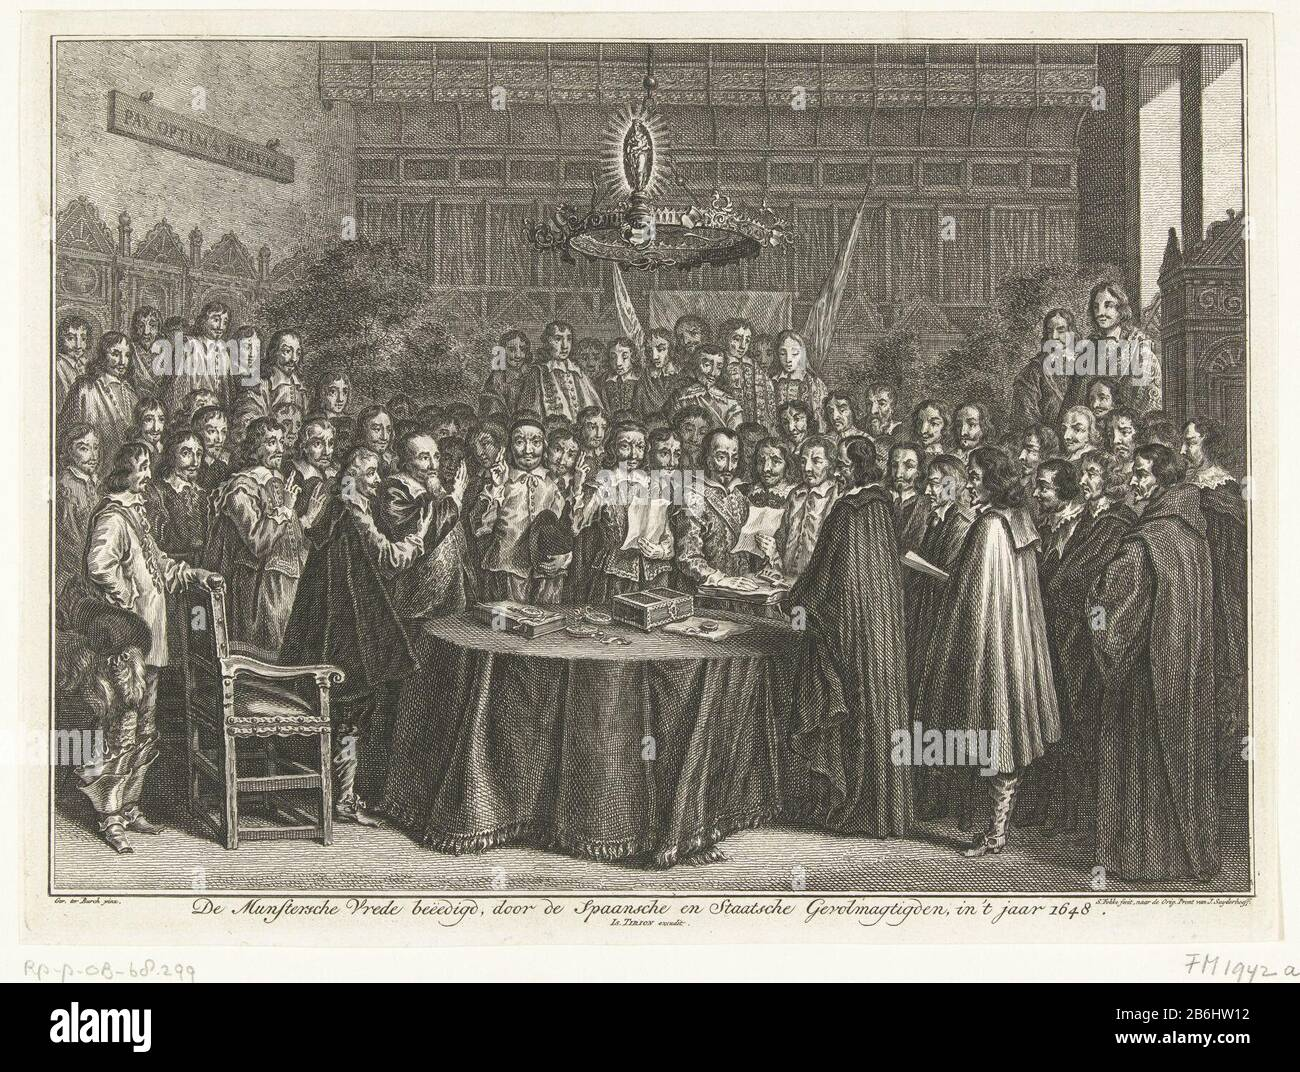 The Swearing In Of The Peace Of Westphalia On May 15 1648 In The Great Hall Of The Town Hall Friedenssaal Munster The Deputies Standing Around A Table And Lay With Raised